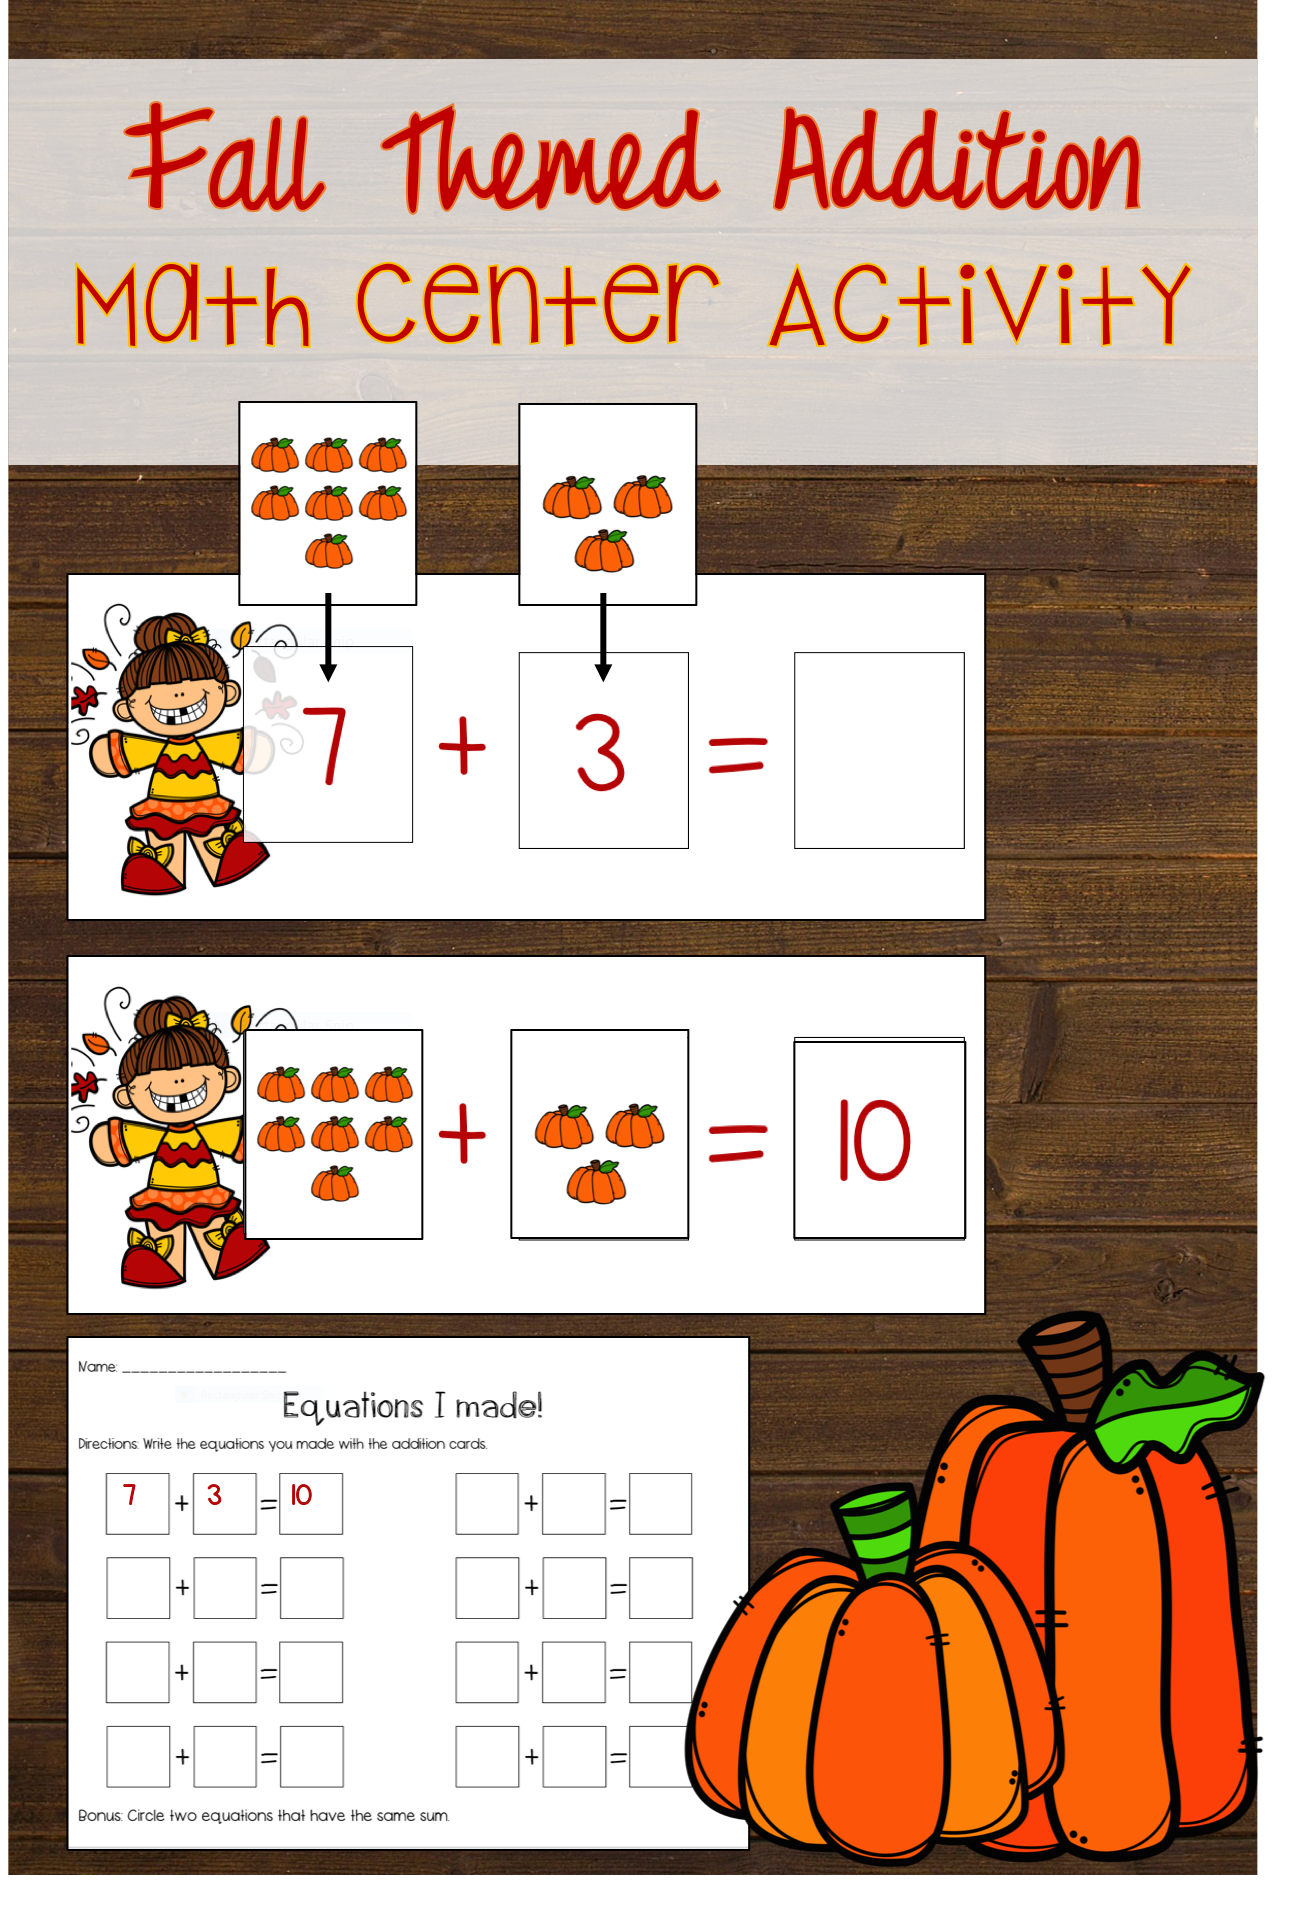 Fall Themed Addition Math Center